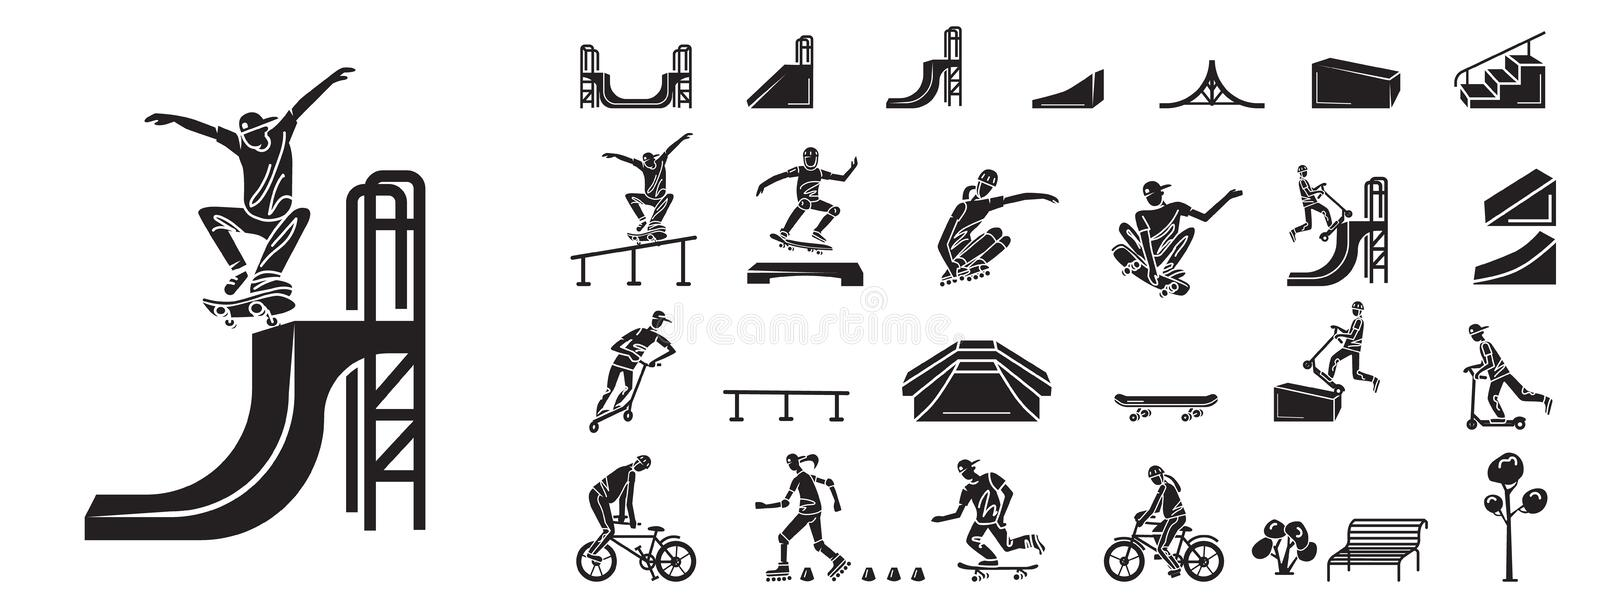 Skate park icons set, simple style stock illustration